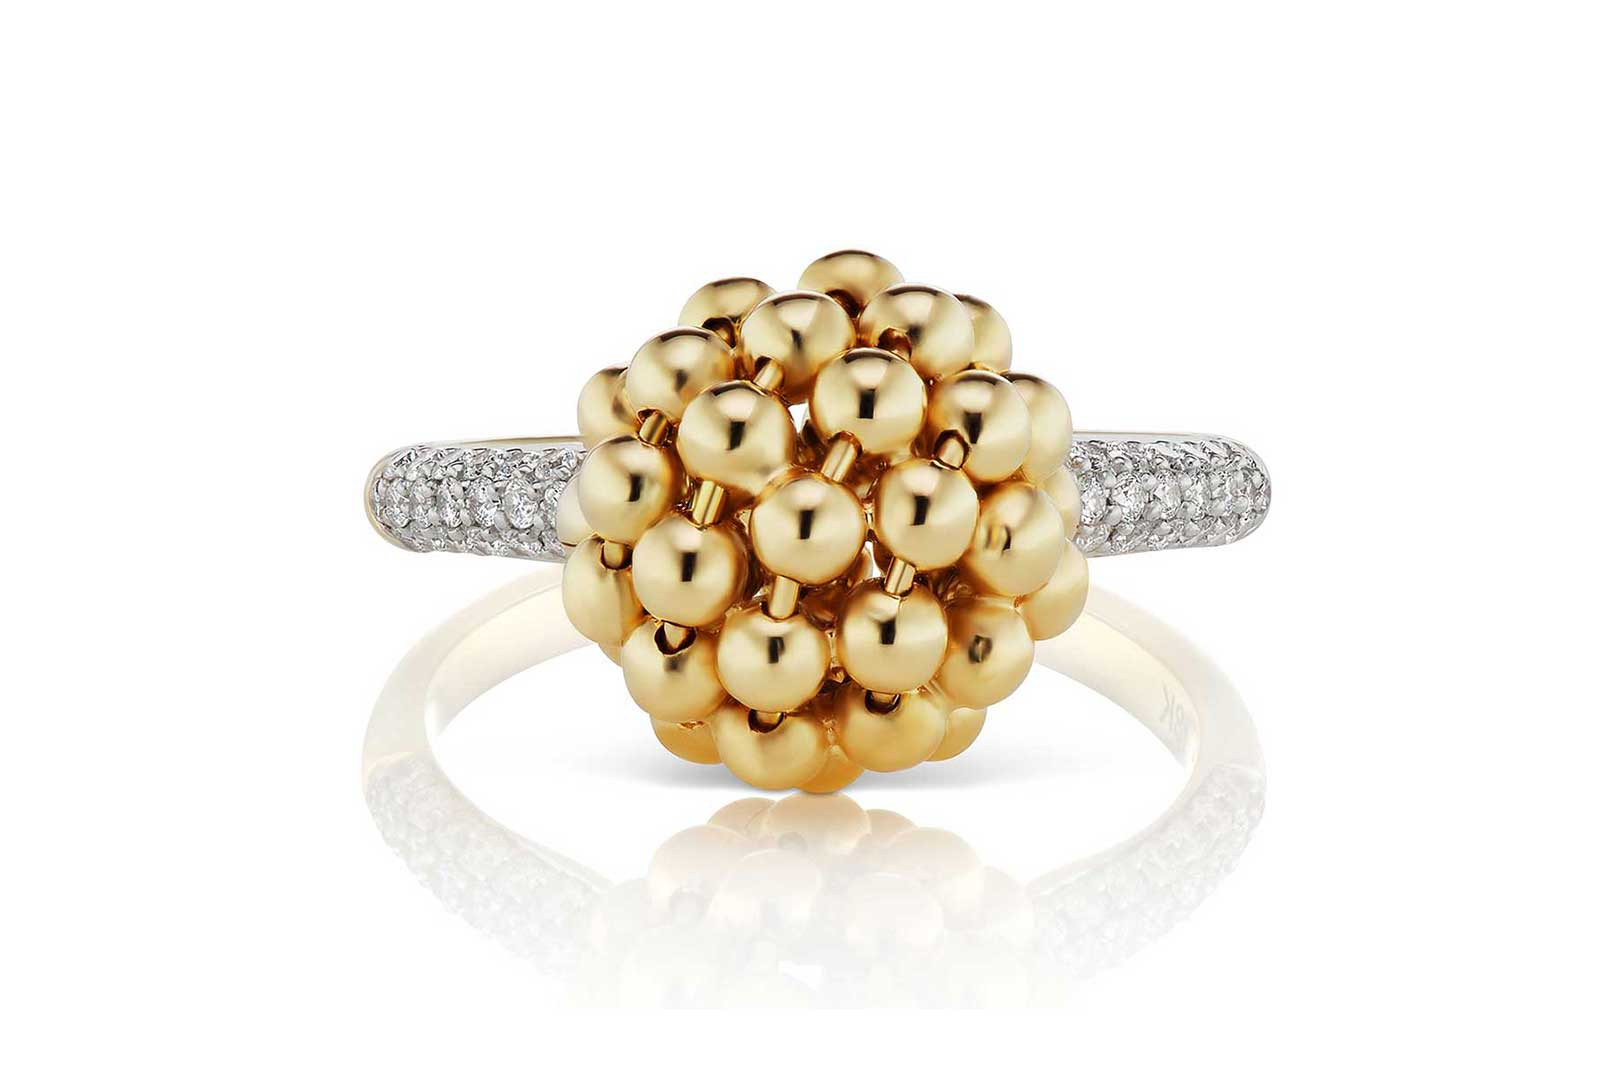 Maria Canale 'Flapper' collection ring with diamonds in 18k yellow and white gold